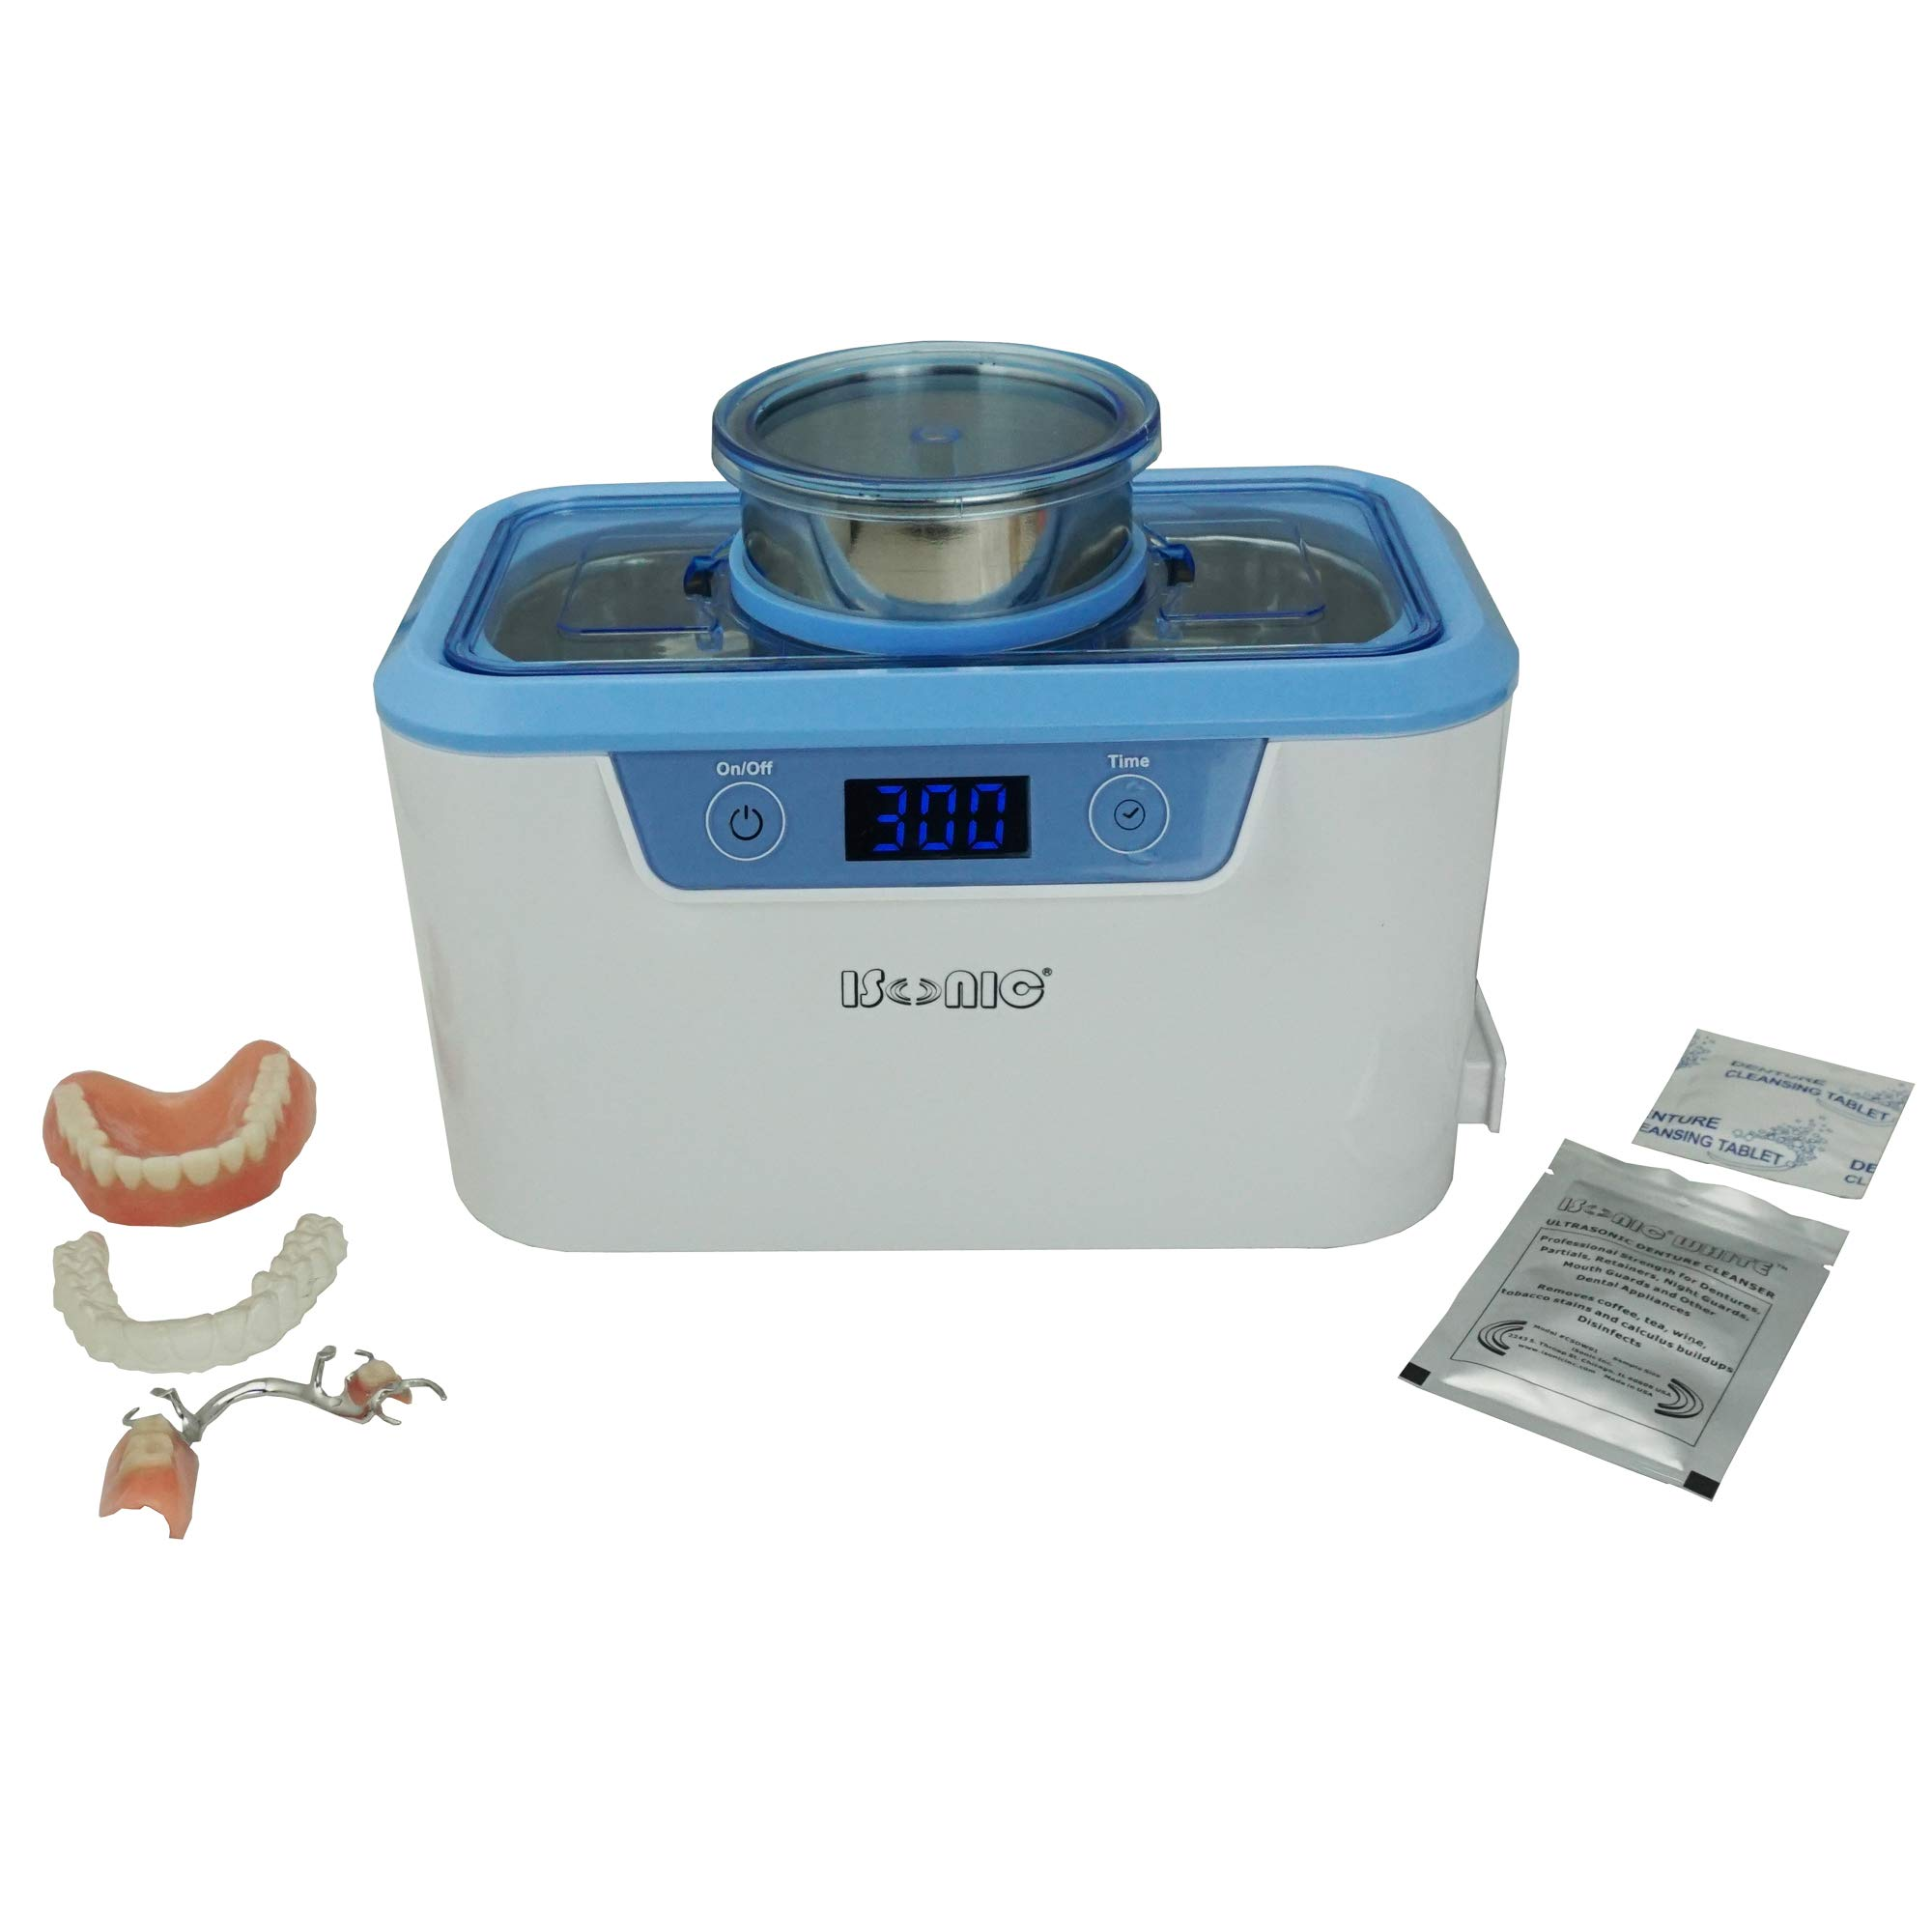 iSonic DS310-W Miniaturized Commercial Ultrasonic Cleaner with Stainless Beaker and Disposable Cup for Dental Offices, 110V 55W, White